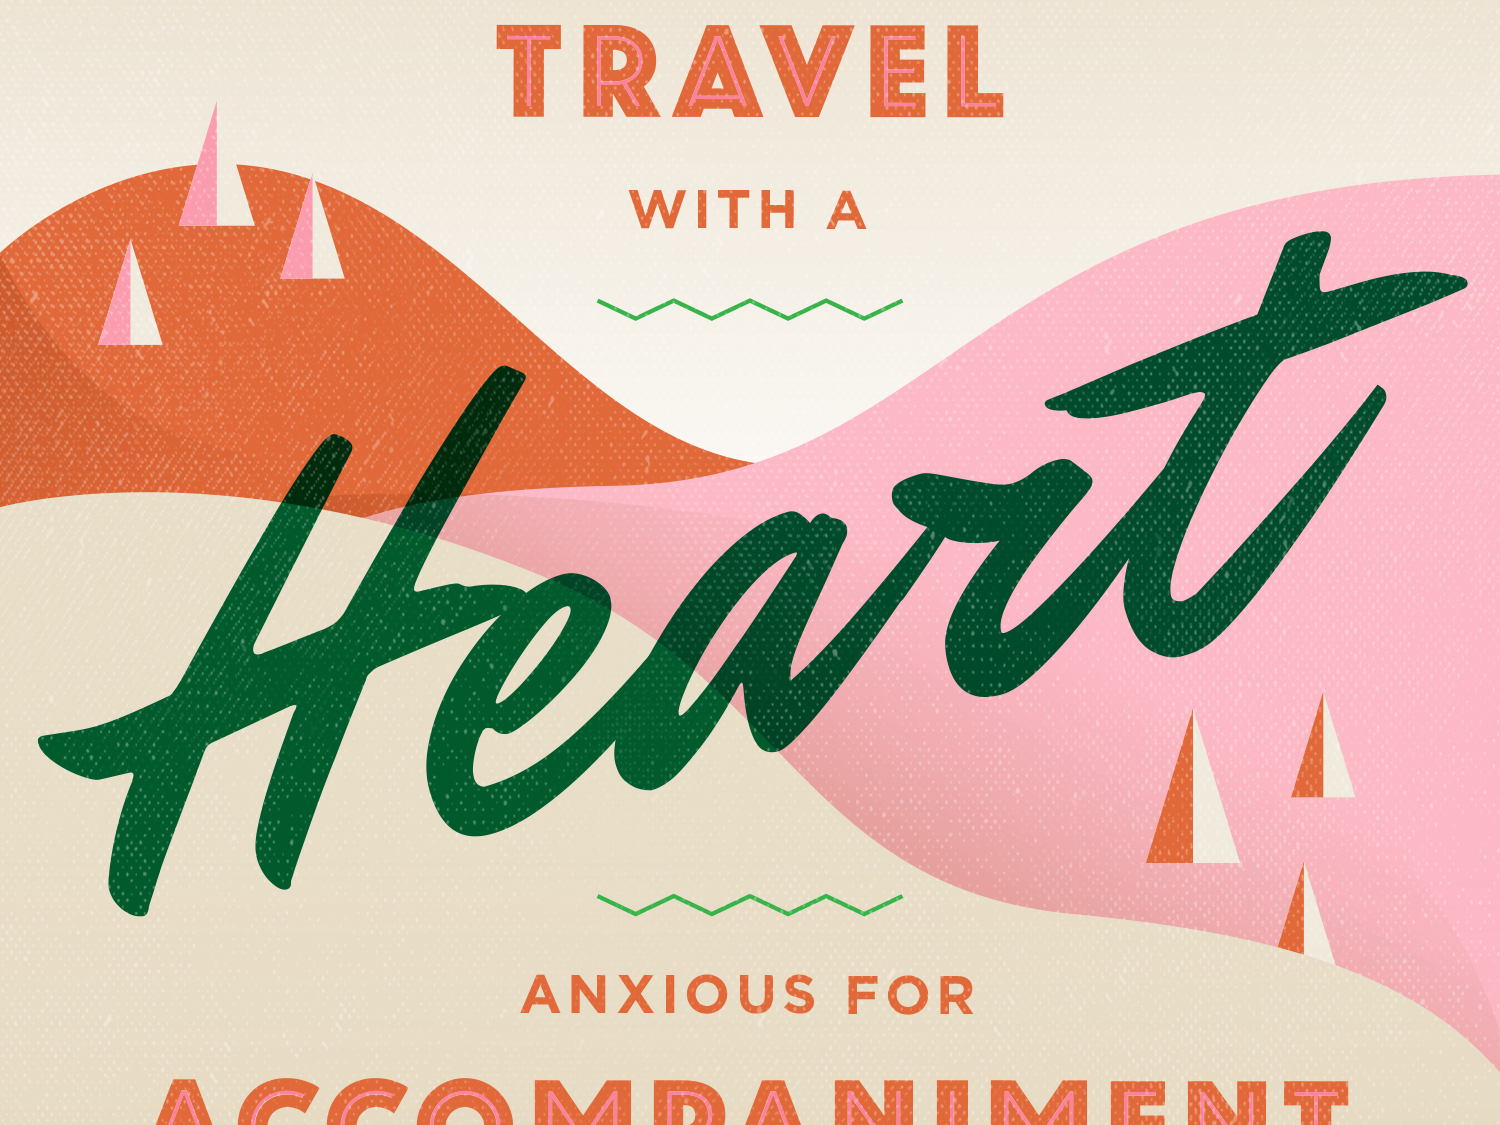 Traveling Heart quote book script travel